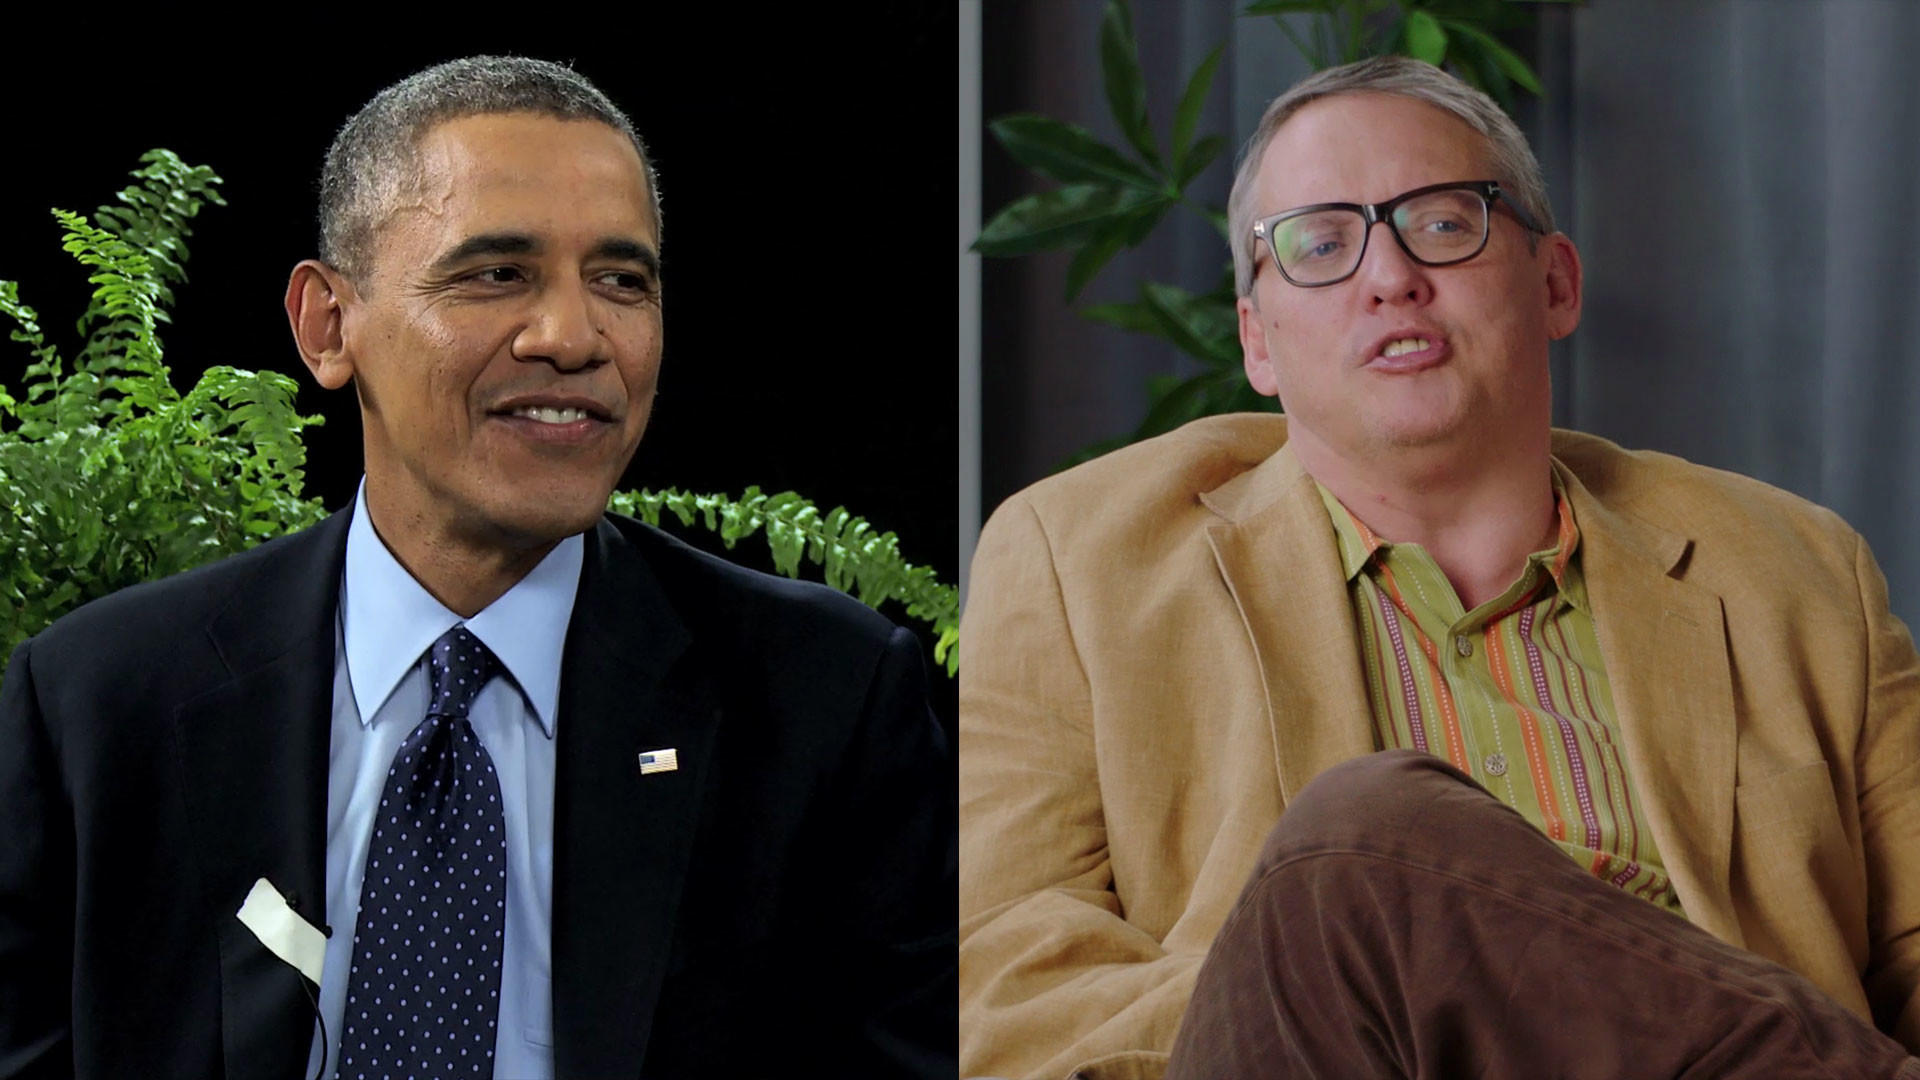 1920x1080 2014: Obama vs Galifianakis - 10 Years of Funny Or Die with Will Ferrell &  Adam McKay